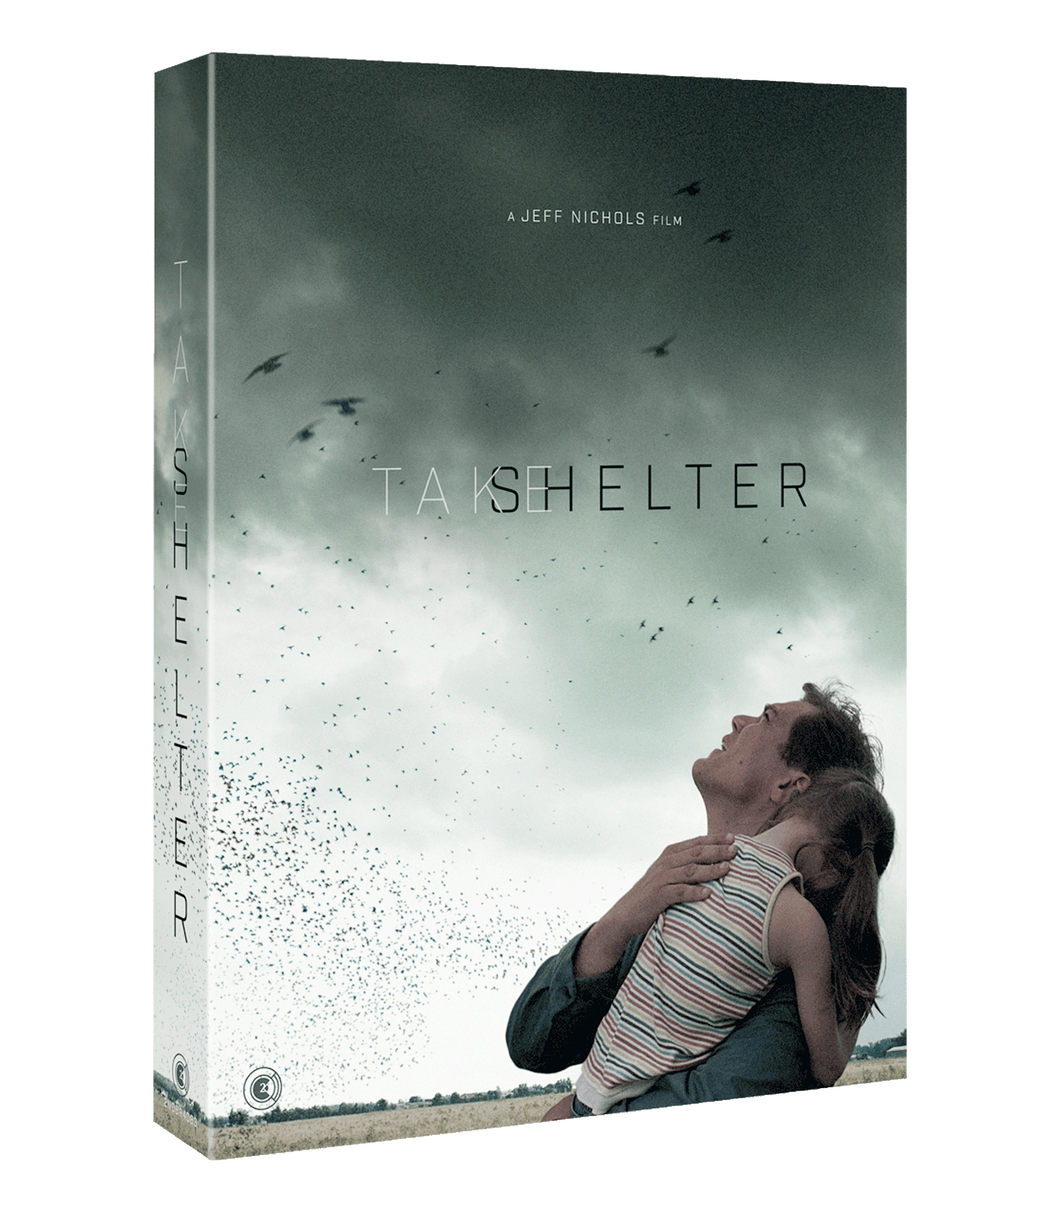 Take Shelter Limited Edition Box Set